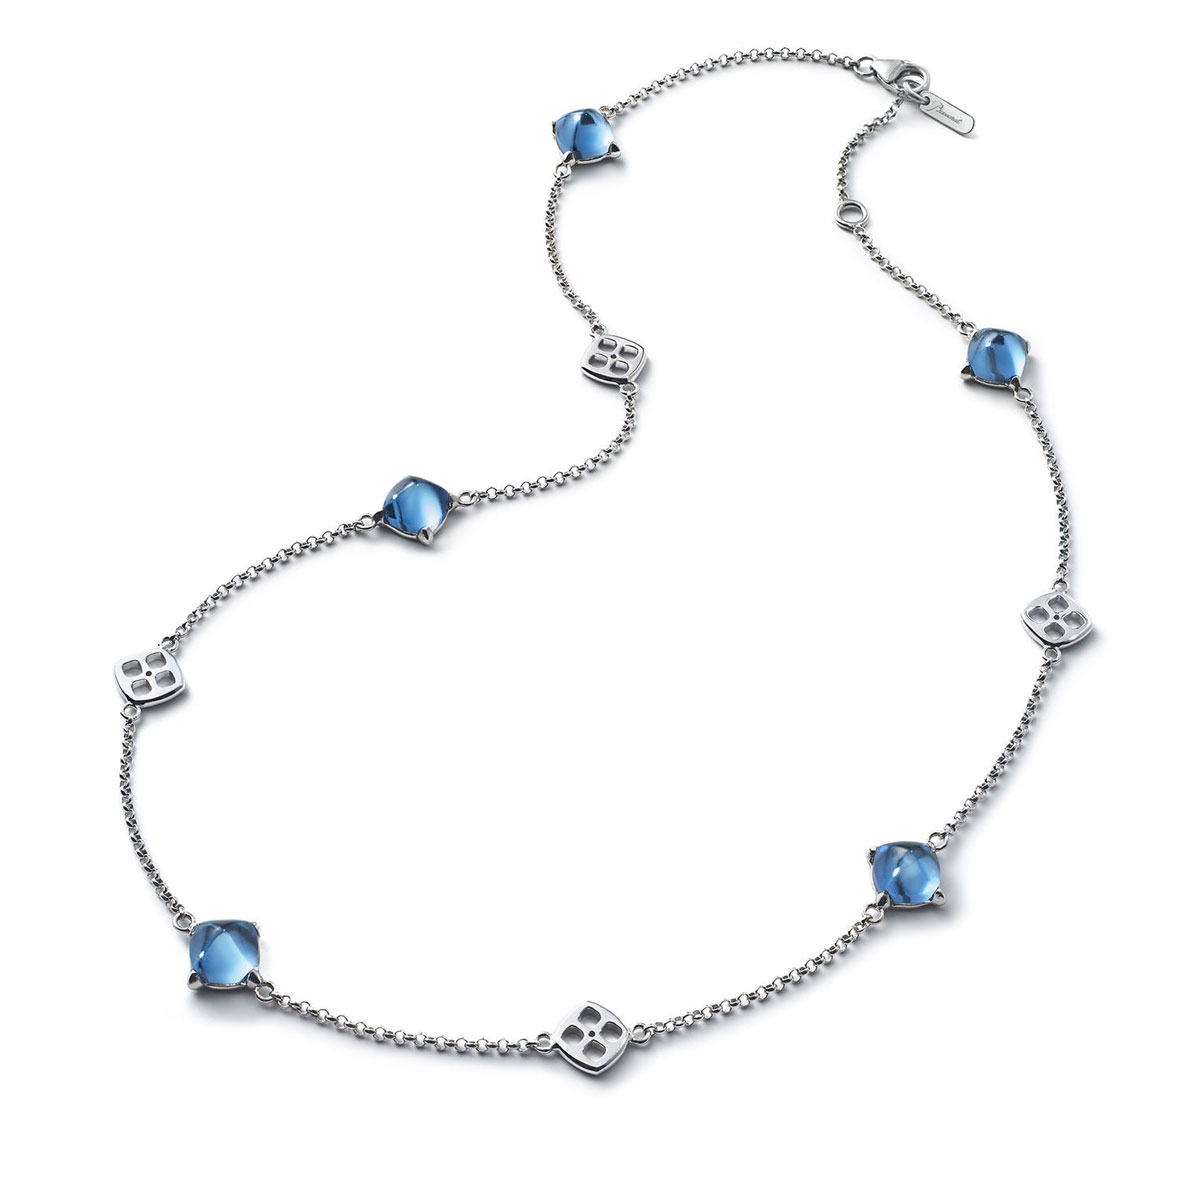 Baccarat Crystal Medicis Mini Necklace Sterling Silver Blue Riviera